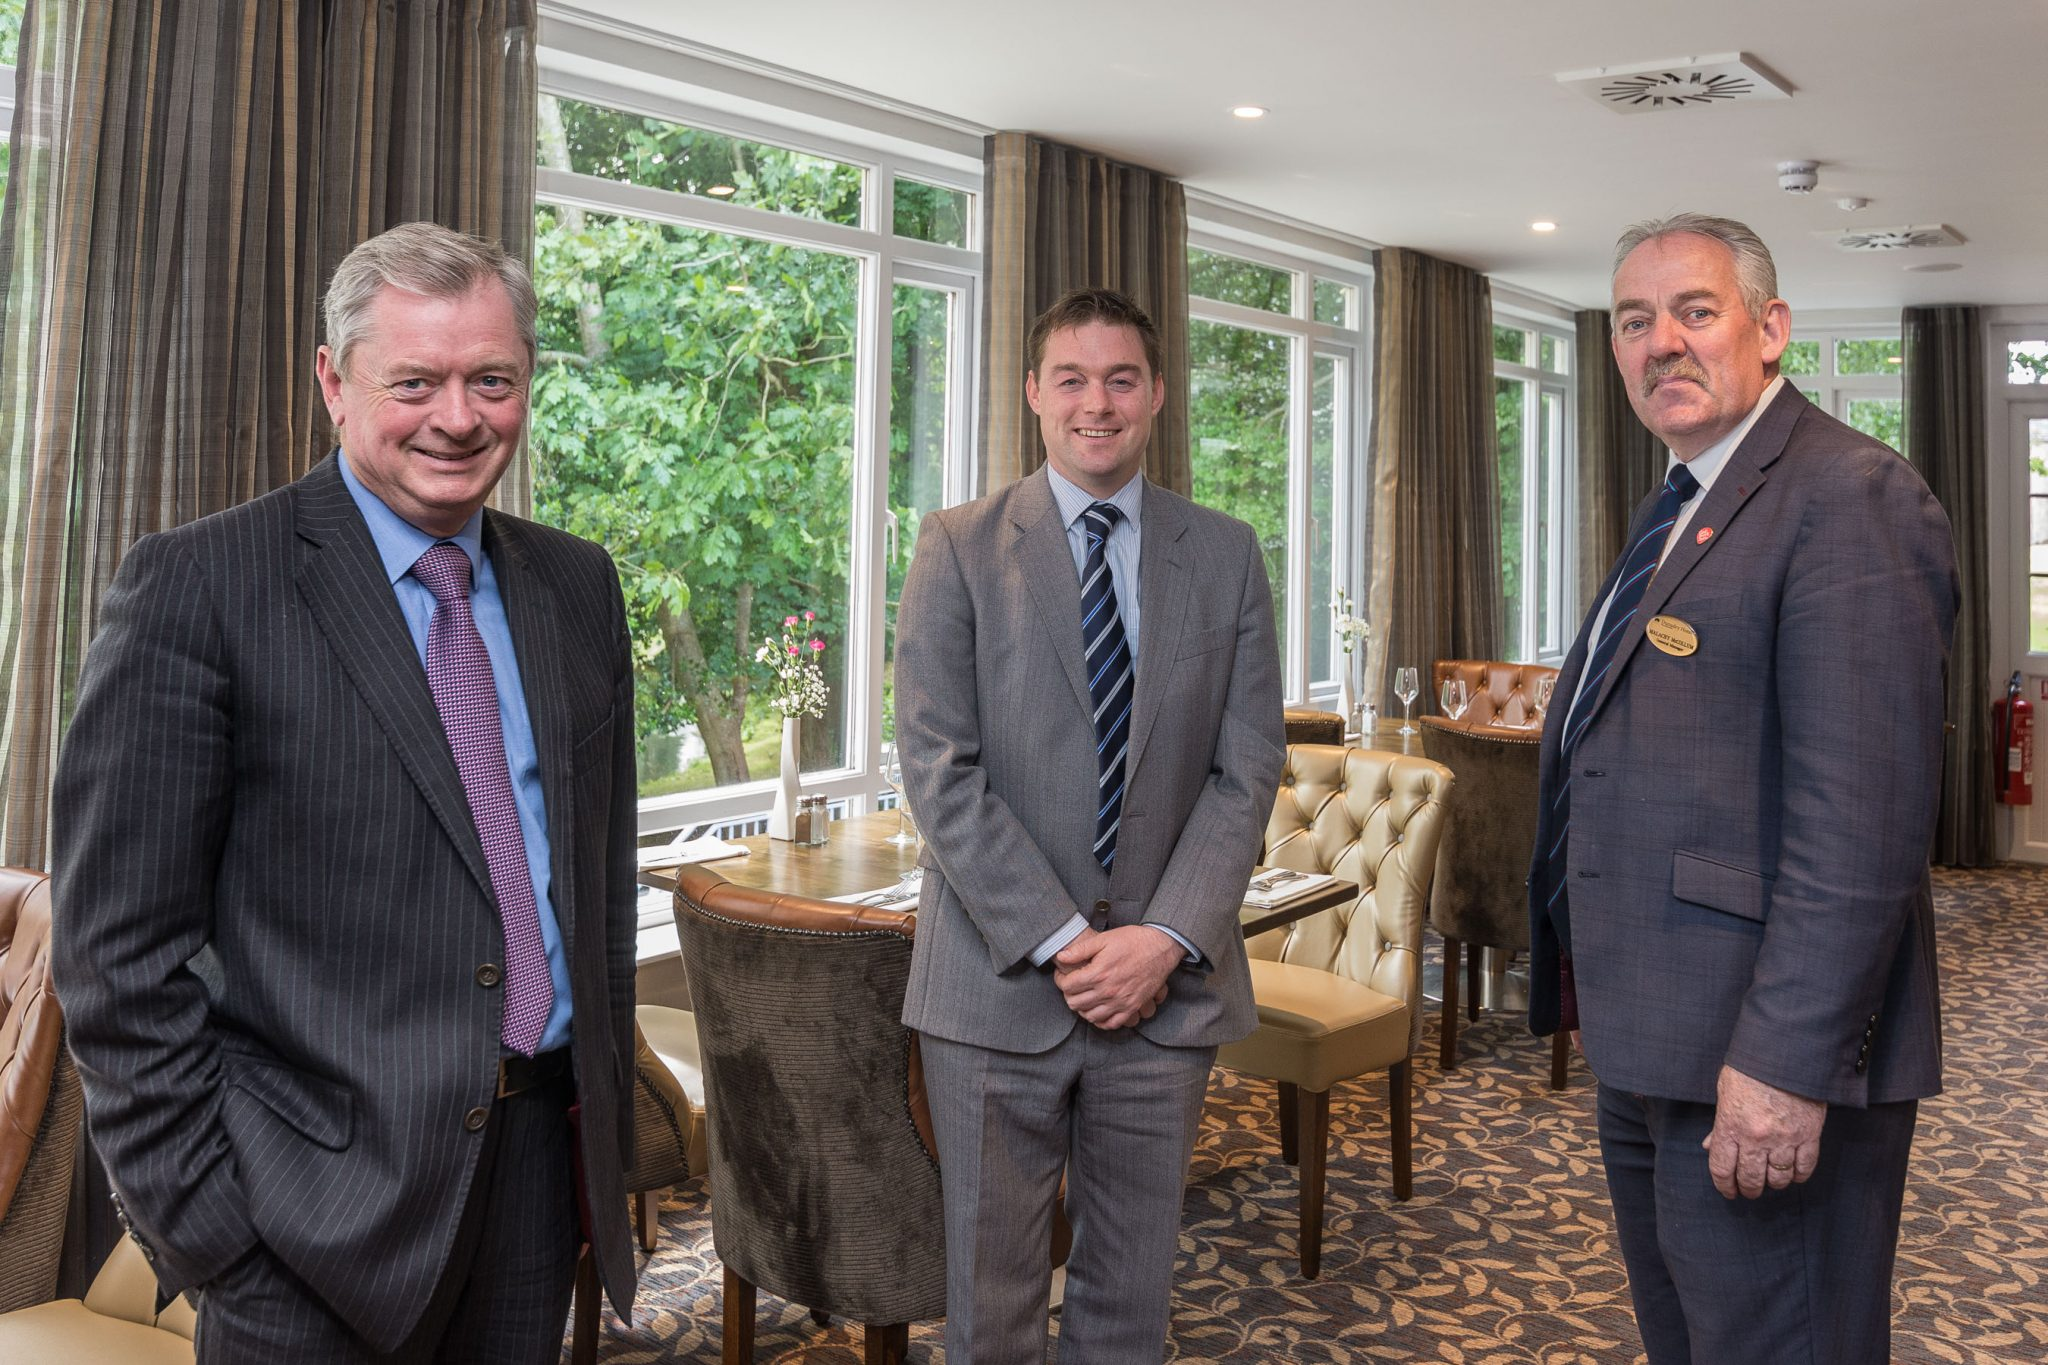 Securing the future at Dunadry